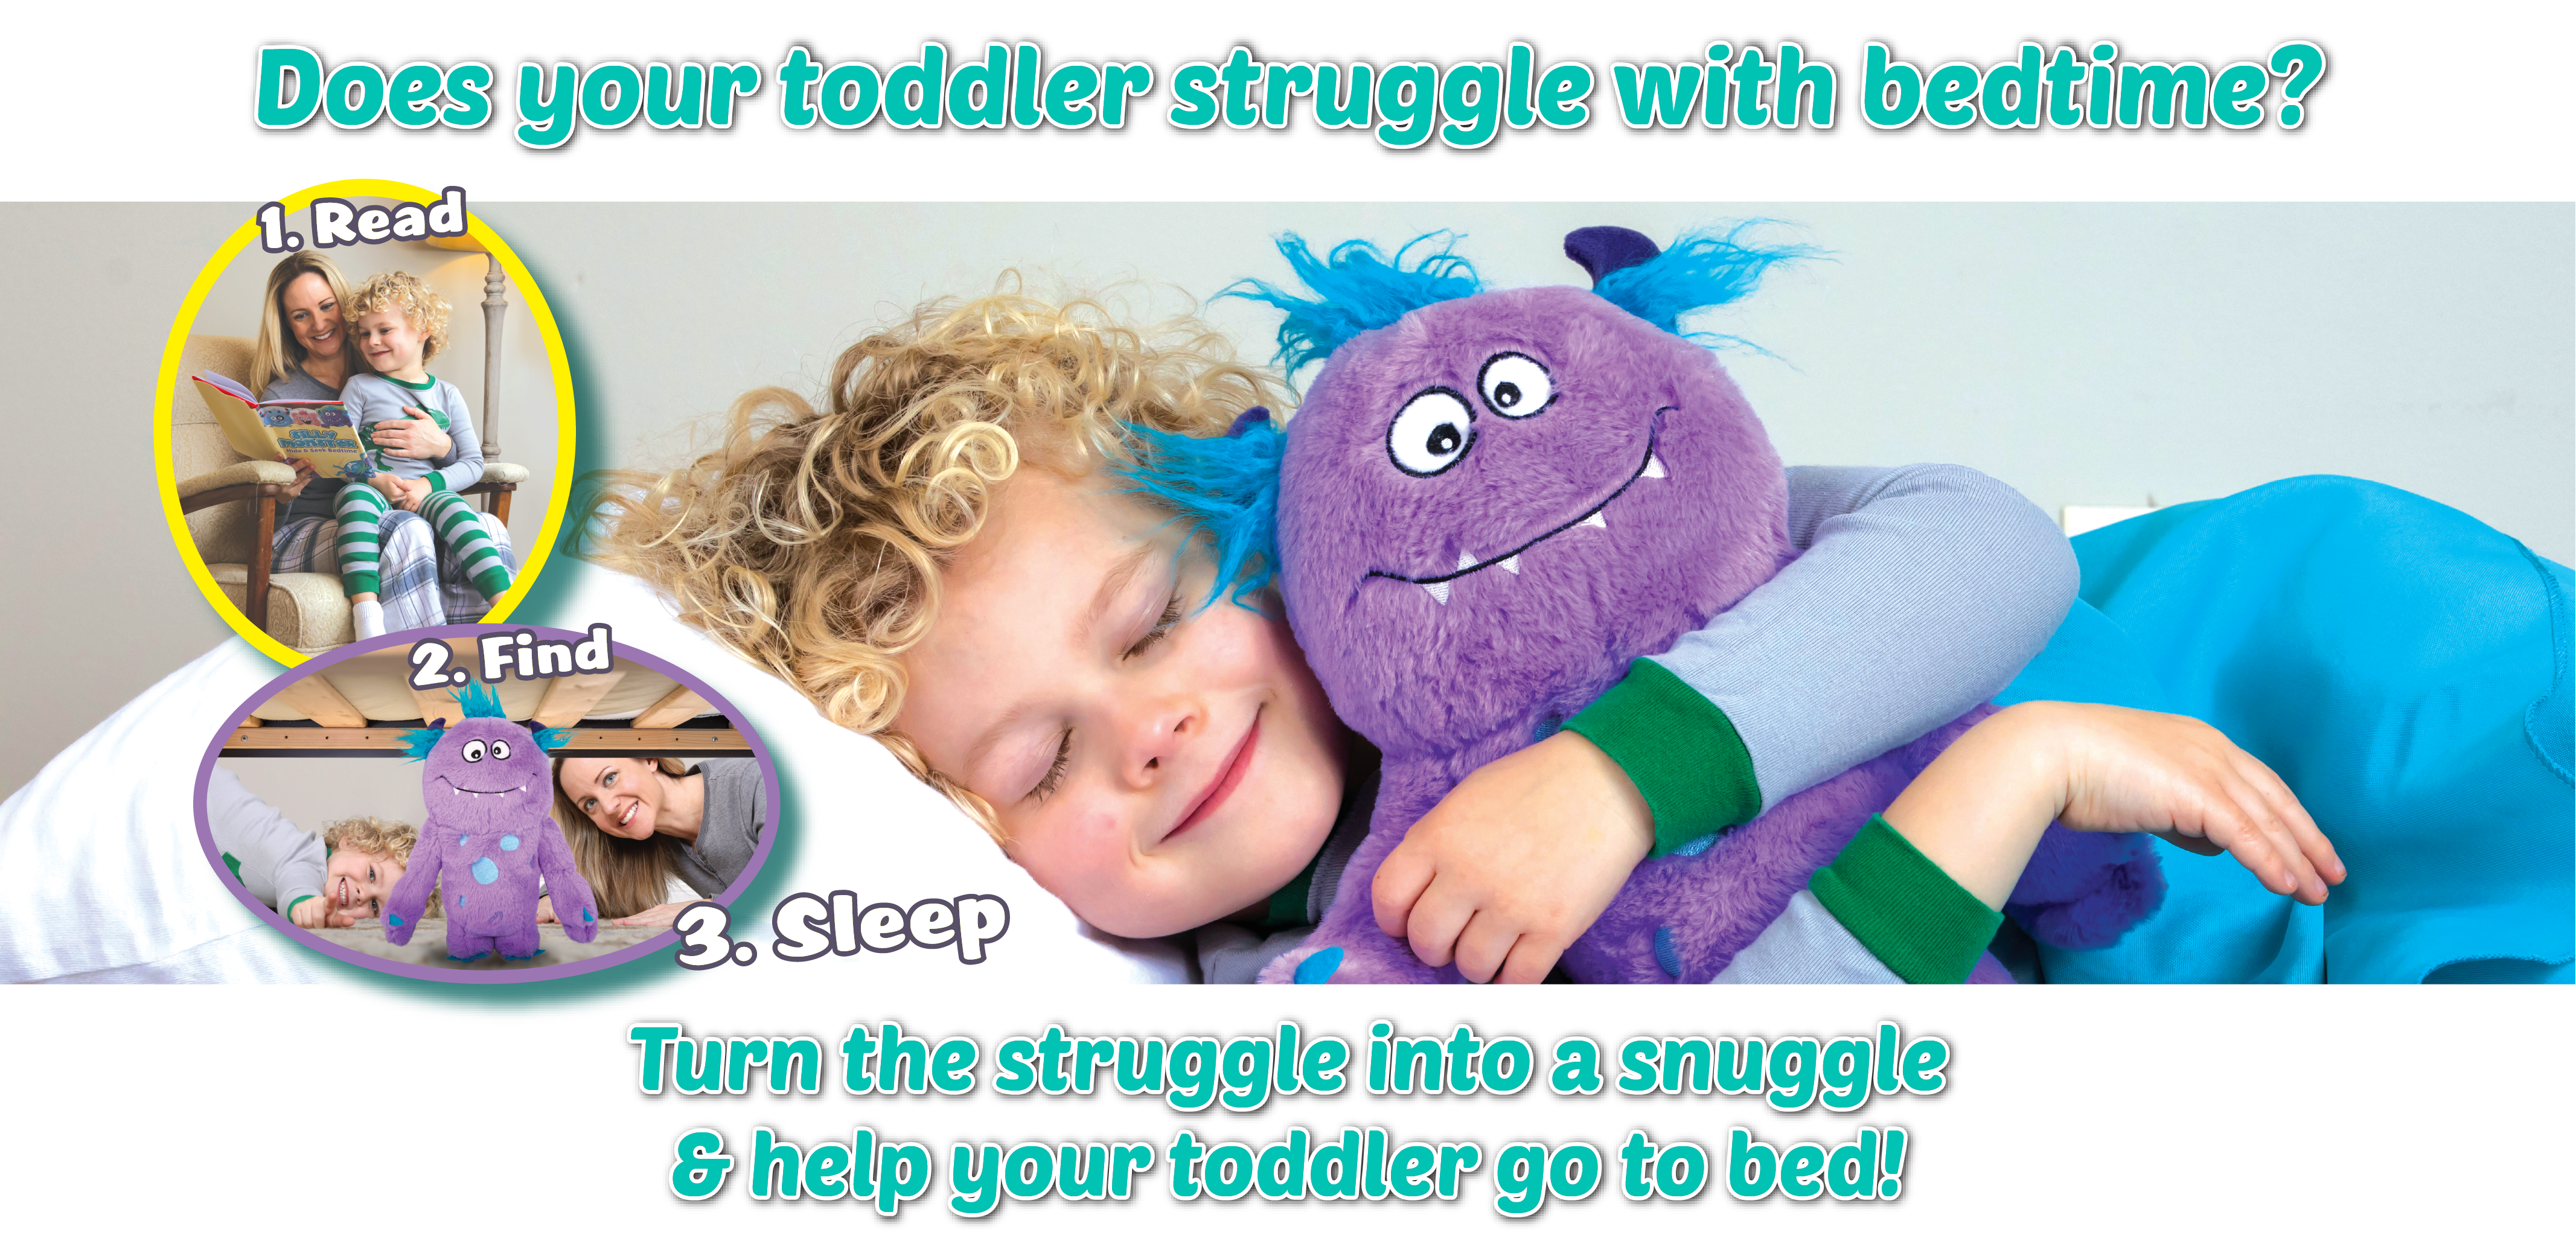 Child with snuggle monster